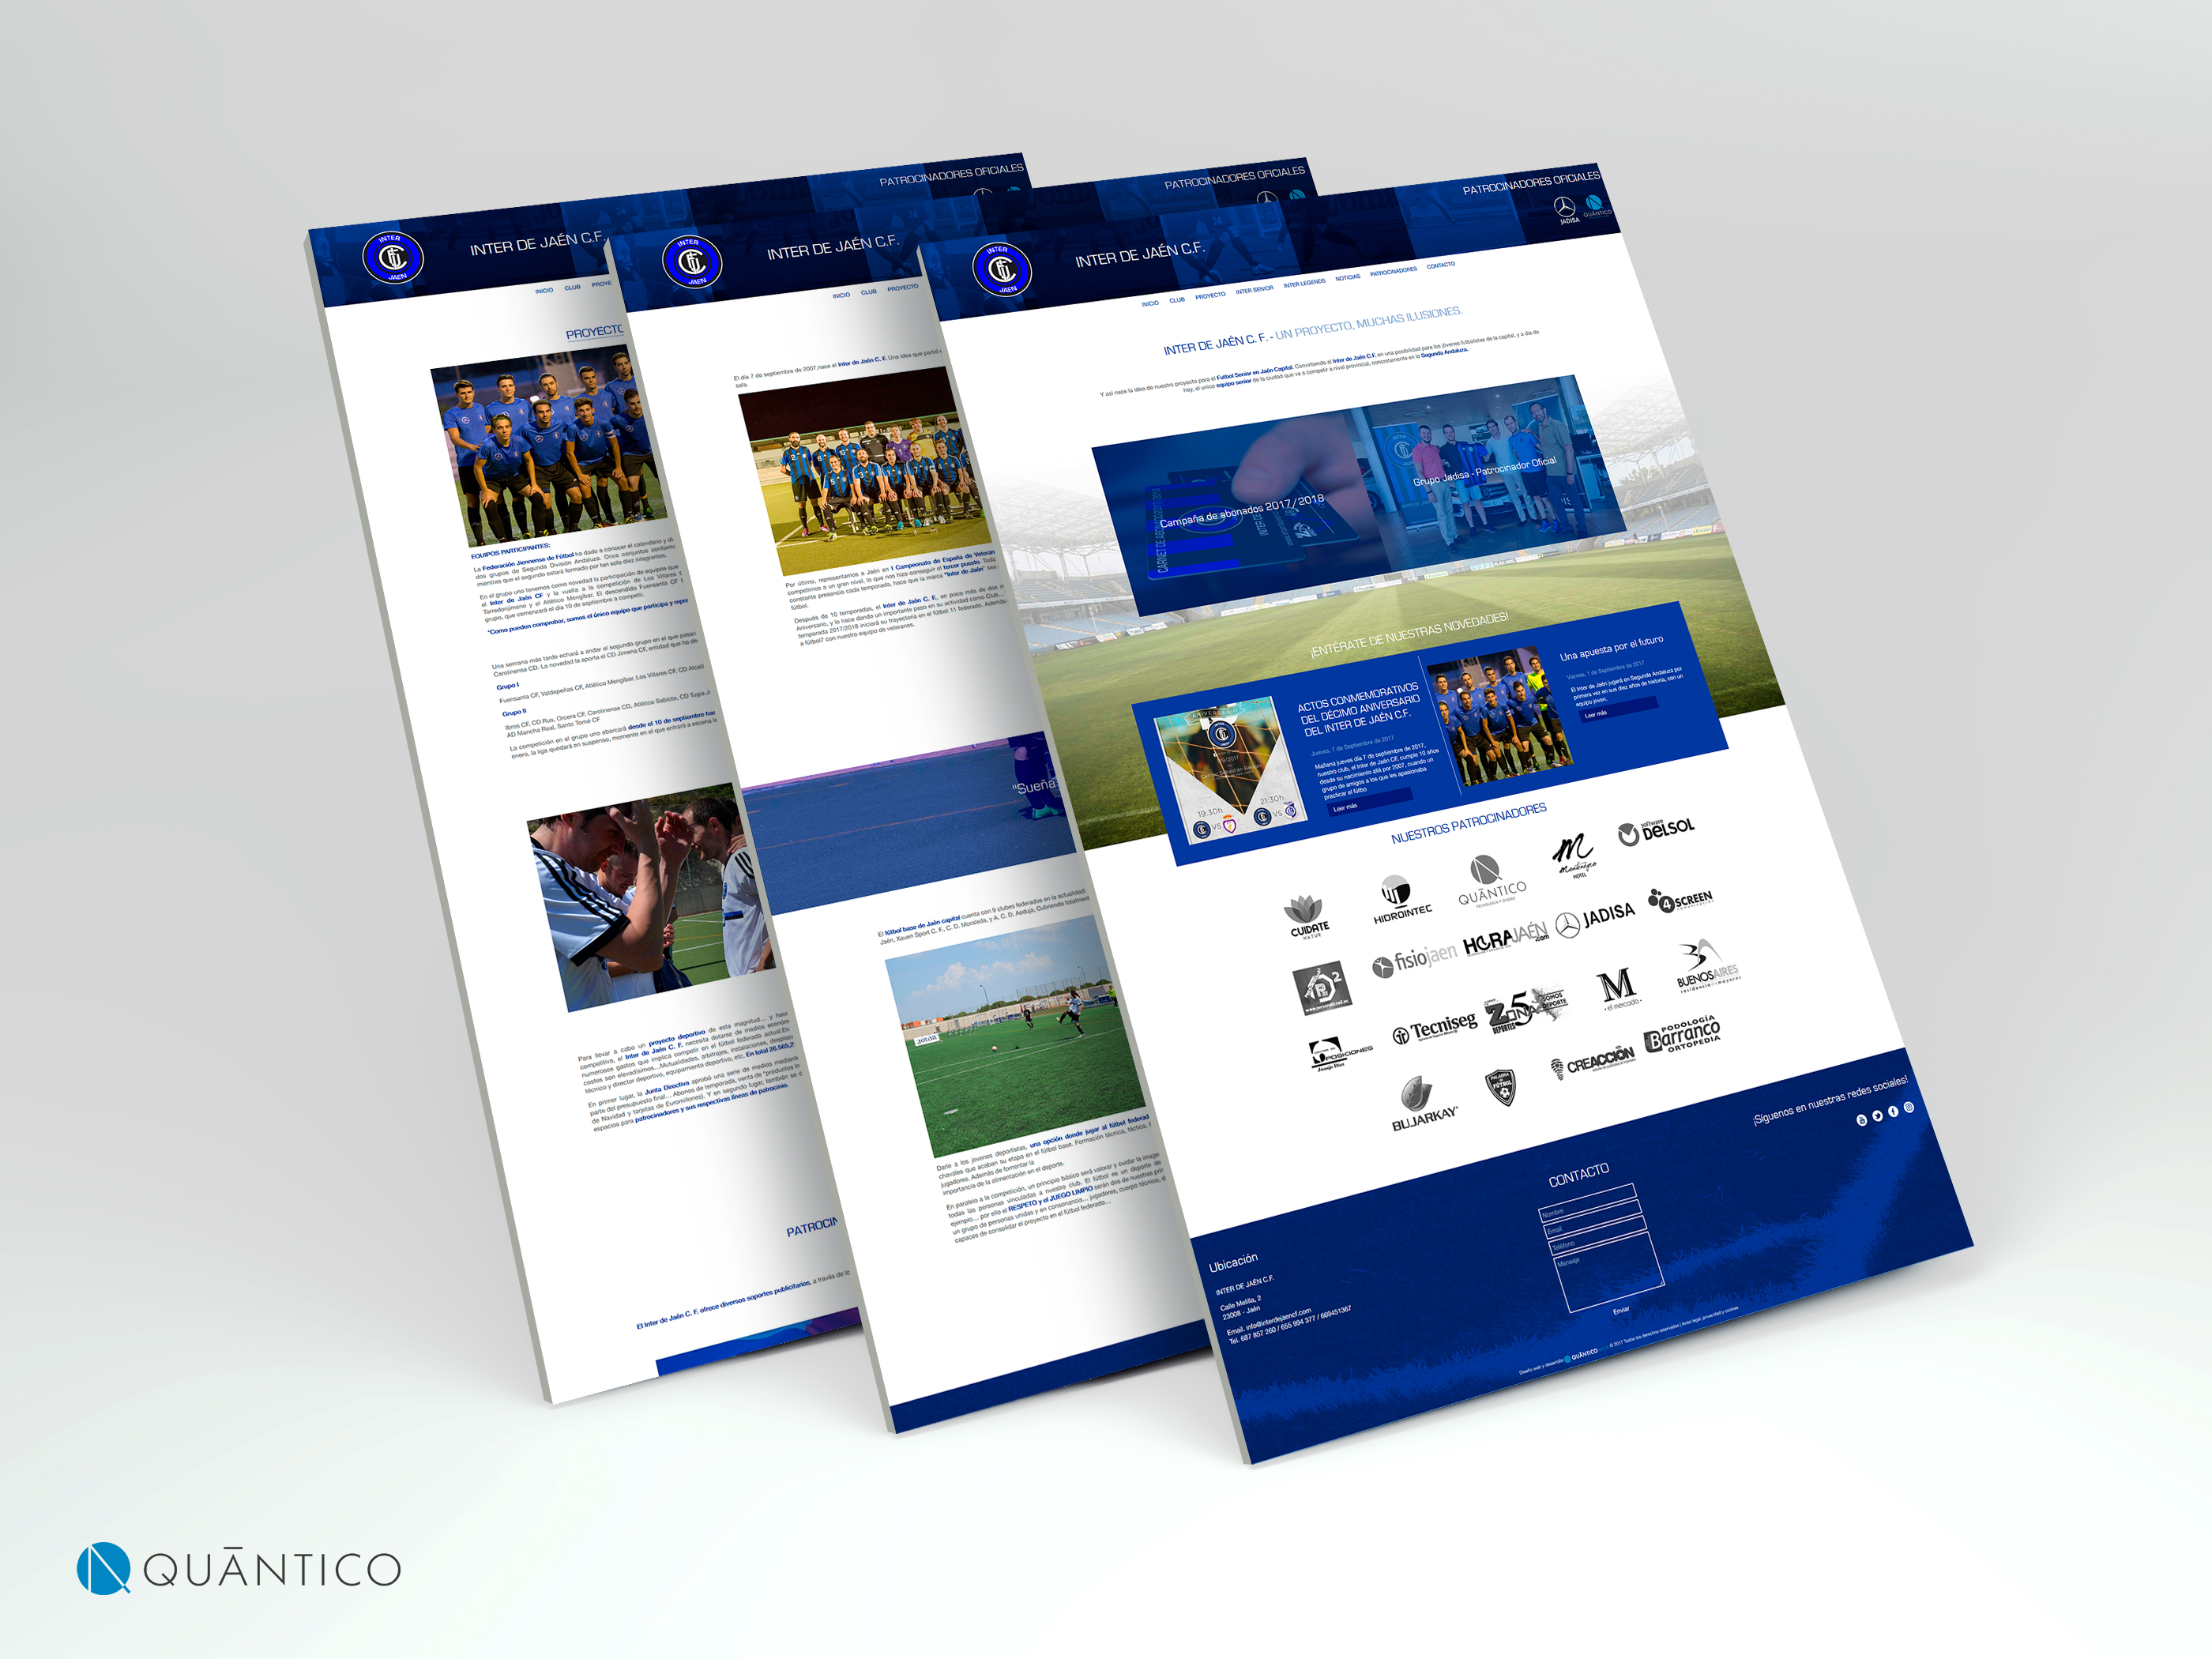 Diseño adaptative inter de jaen